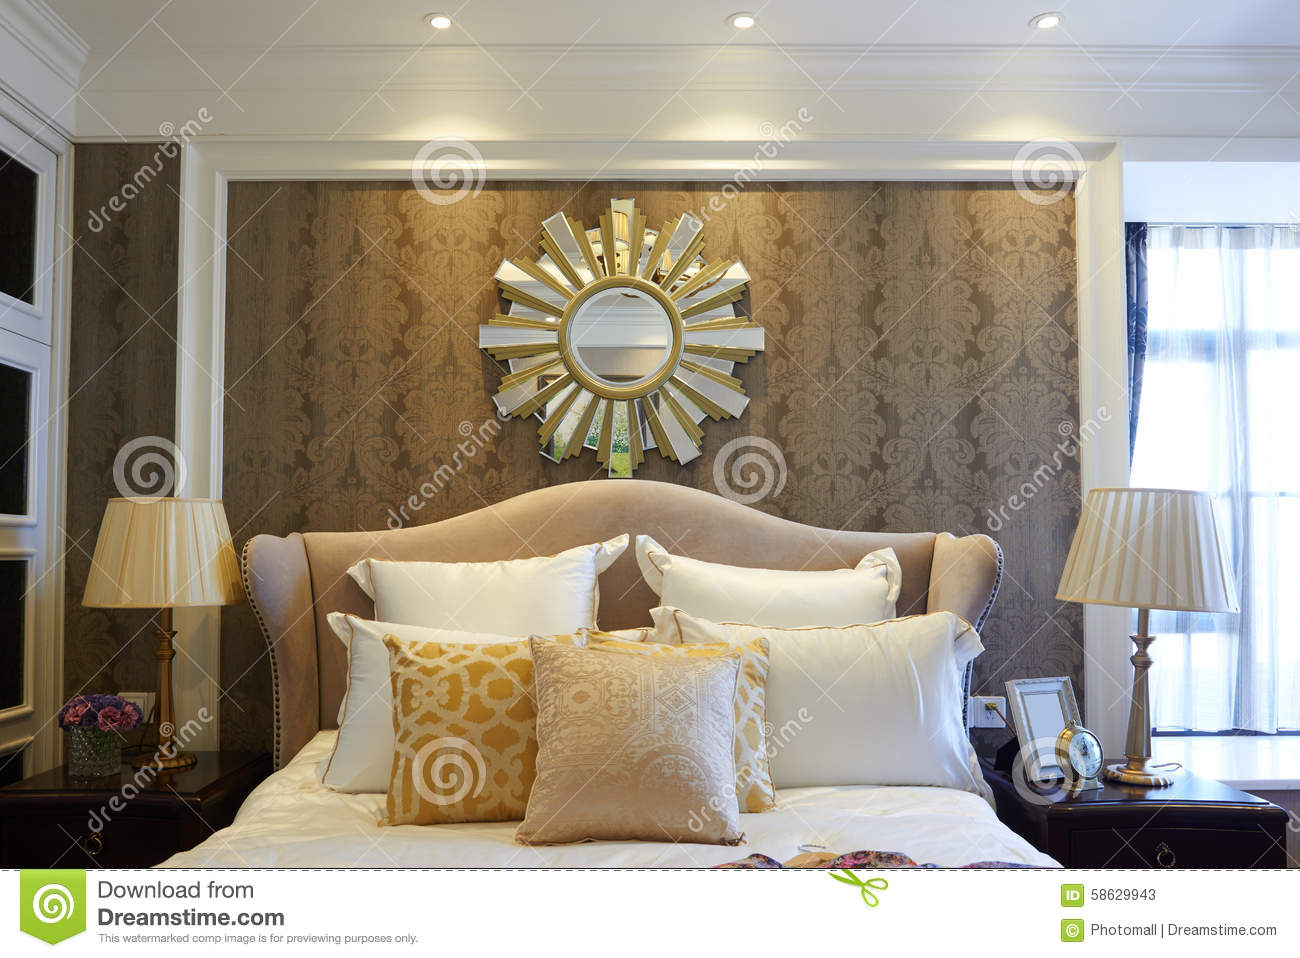 Chambre coucher d 39 h tel photo stock image 58629943 for Chambre a coucher hotel